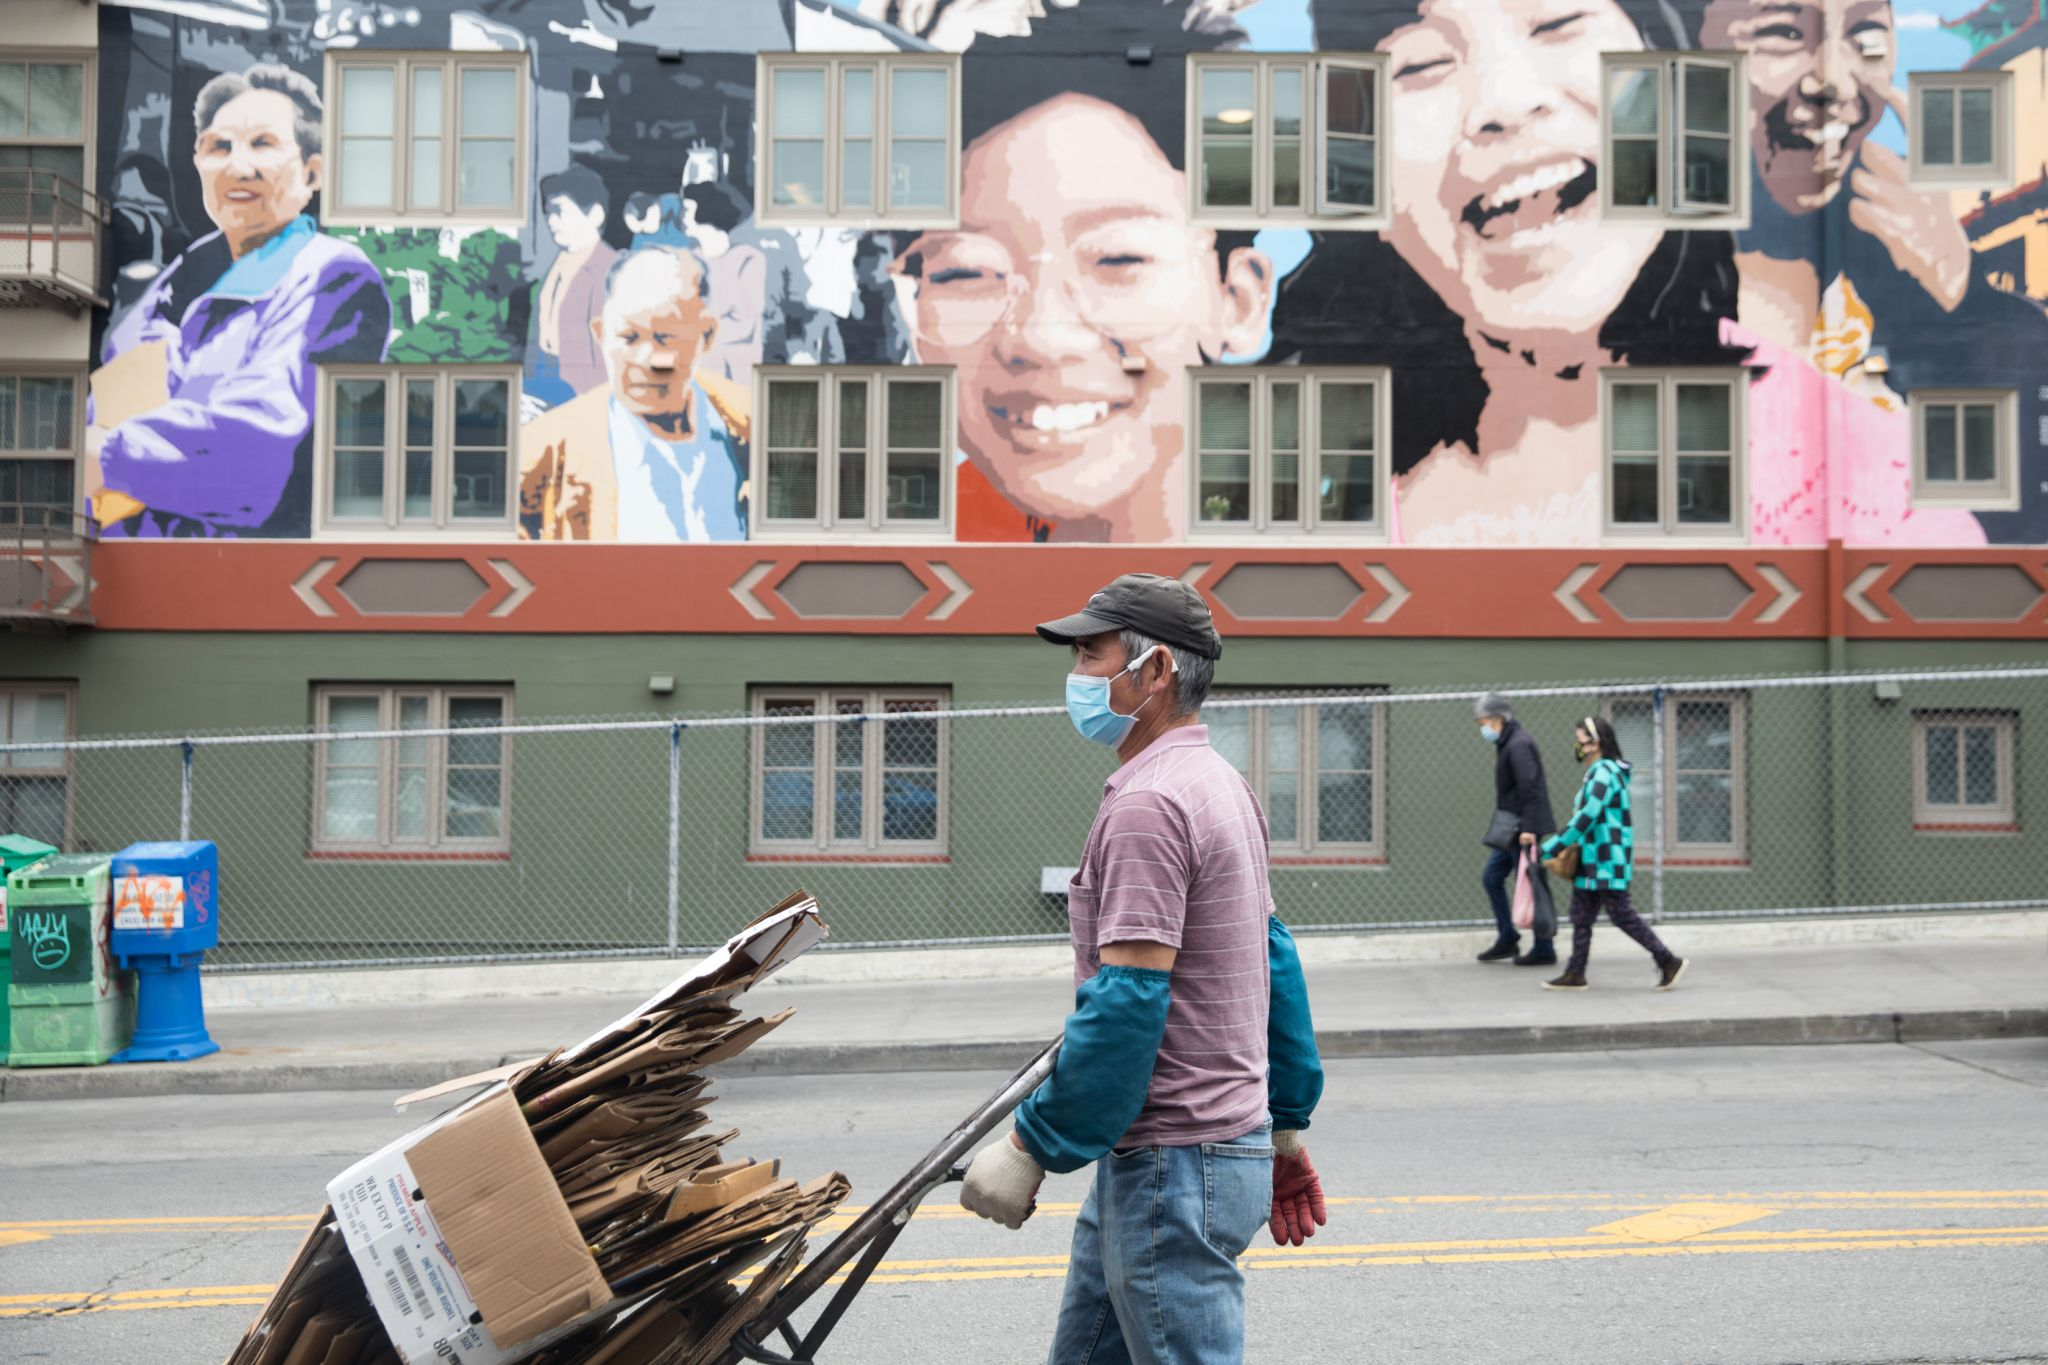 Why does SF's Chinatown have low COVID-19 case rates? It's complicated